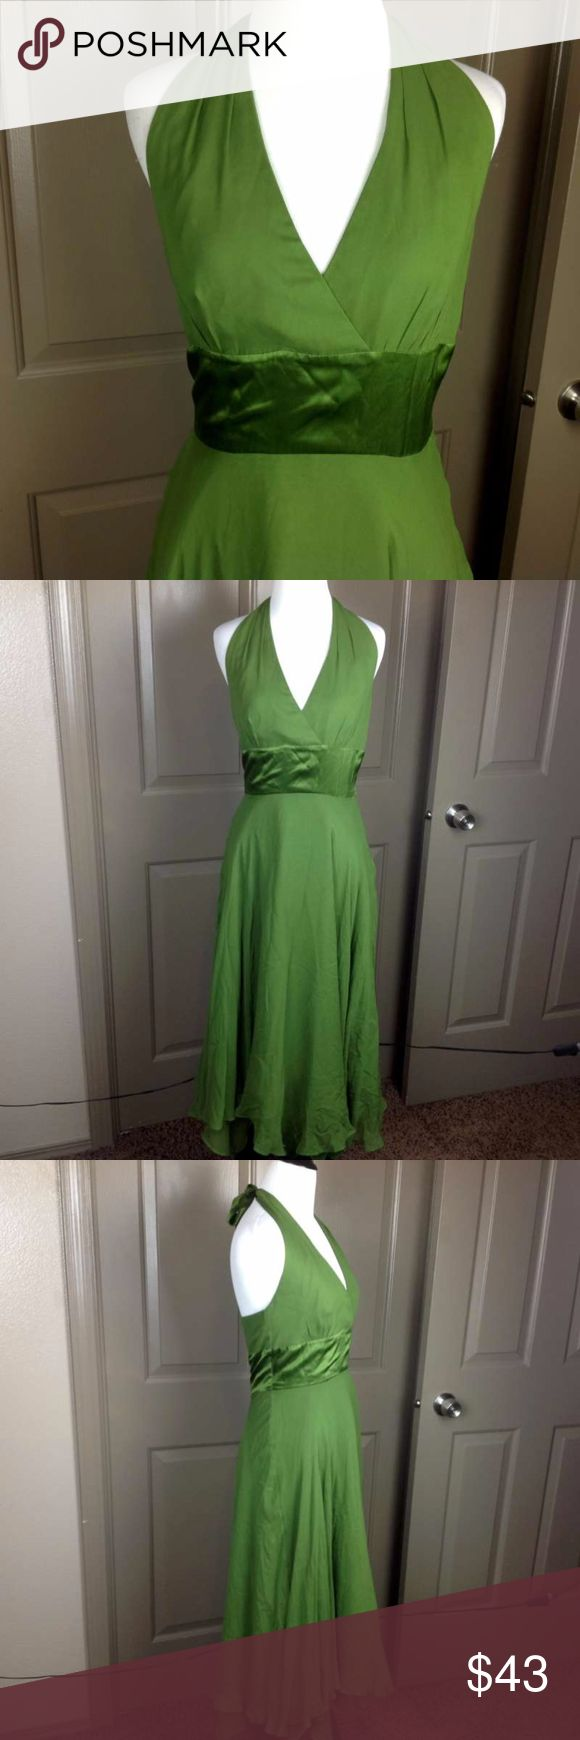 Donna Ricco Dress 4 Maxi 100% Silk Flare Formal Great Condition Donna Ricco Dress 4 Maxi 100% Silk Flare Formal Sleeveless Green approx. 52 inch length from top of tie back 16 inch across bust 14 inch across waist Polyester lined Donna Ricco Dresses Maxi